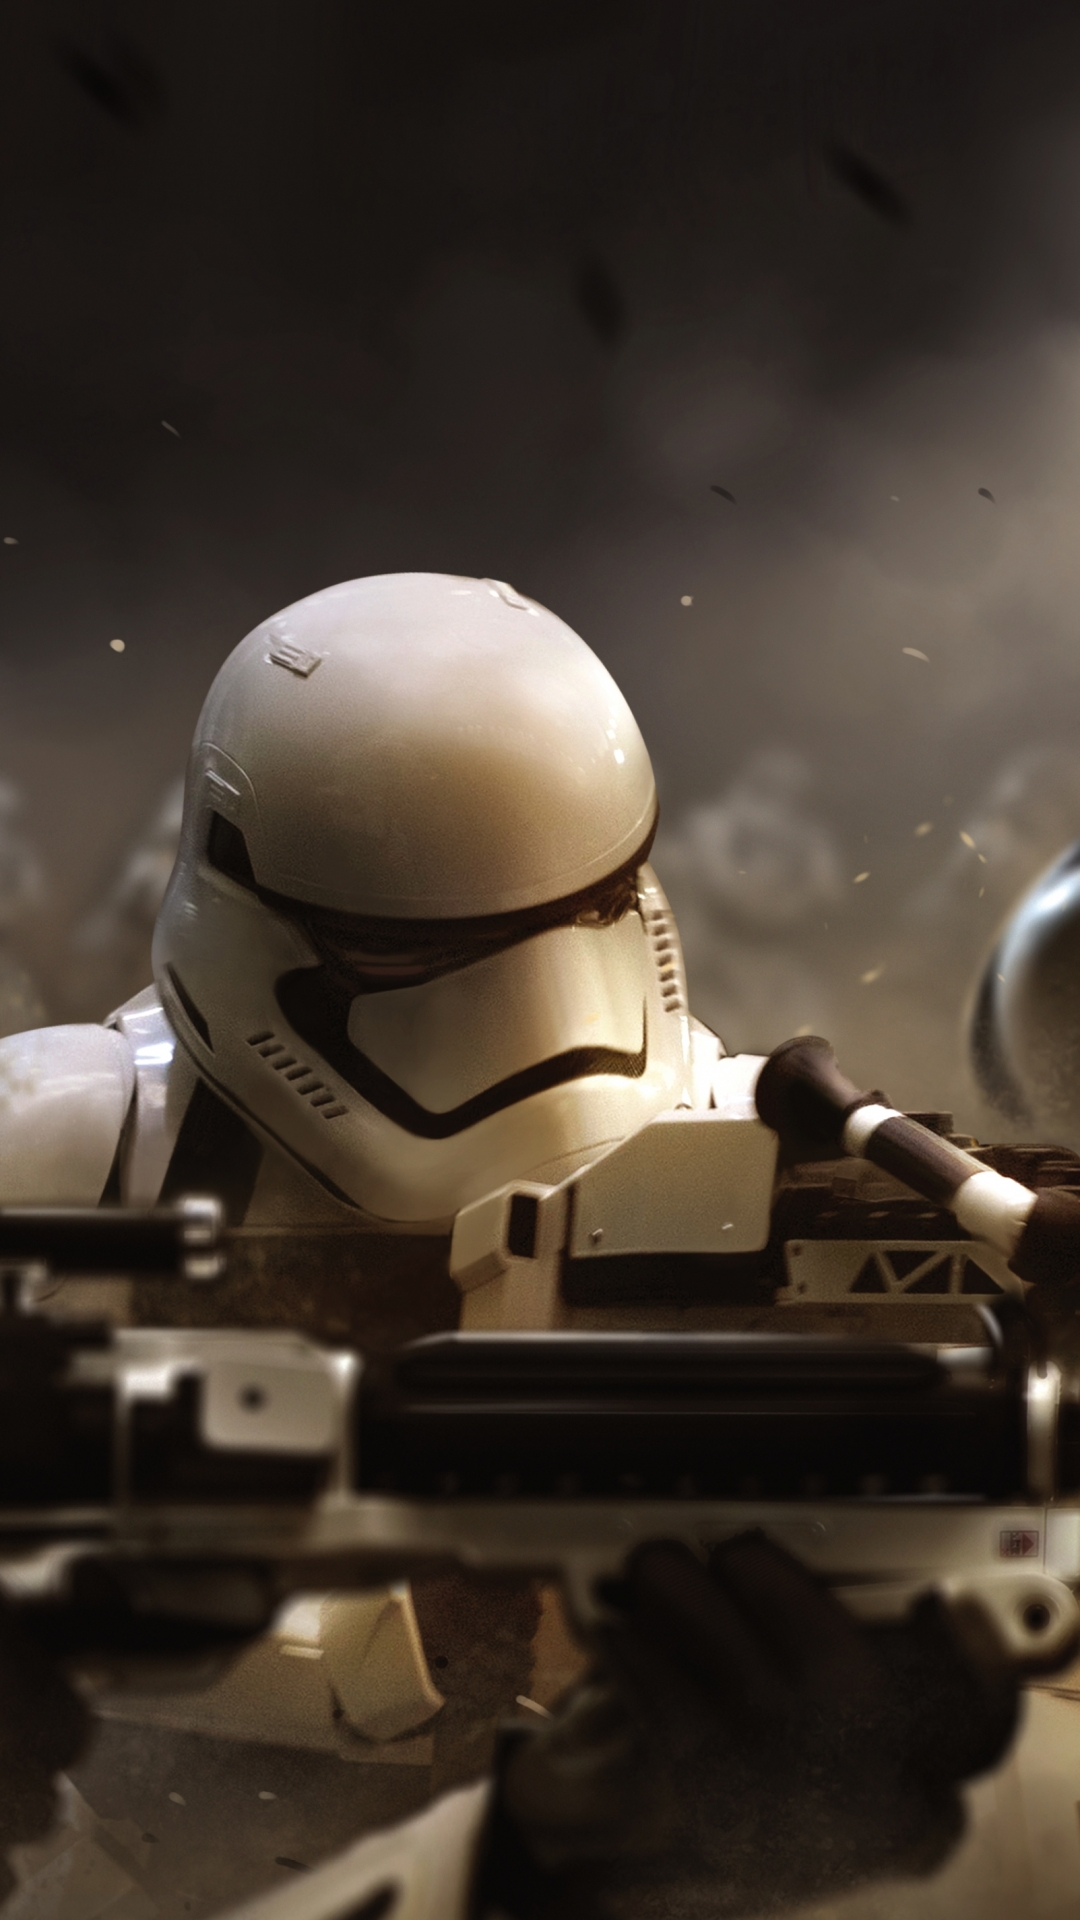 ... : The Force Awakens iPhone wallpapers | Mid Atlantic Consulting Blog